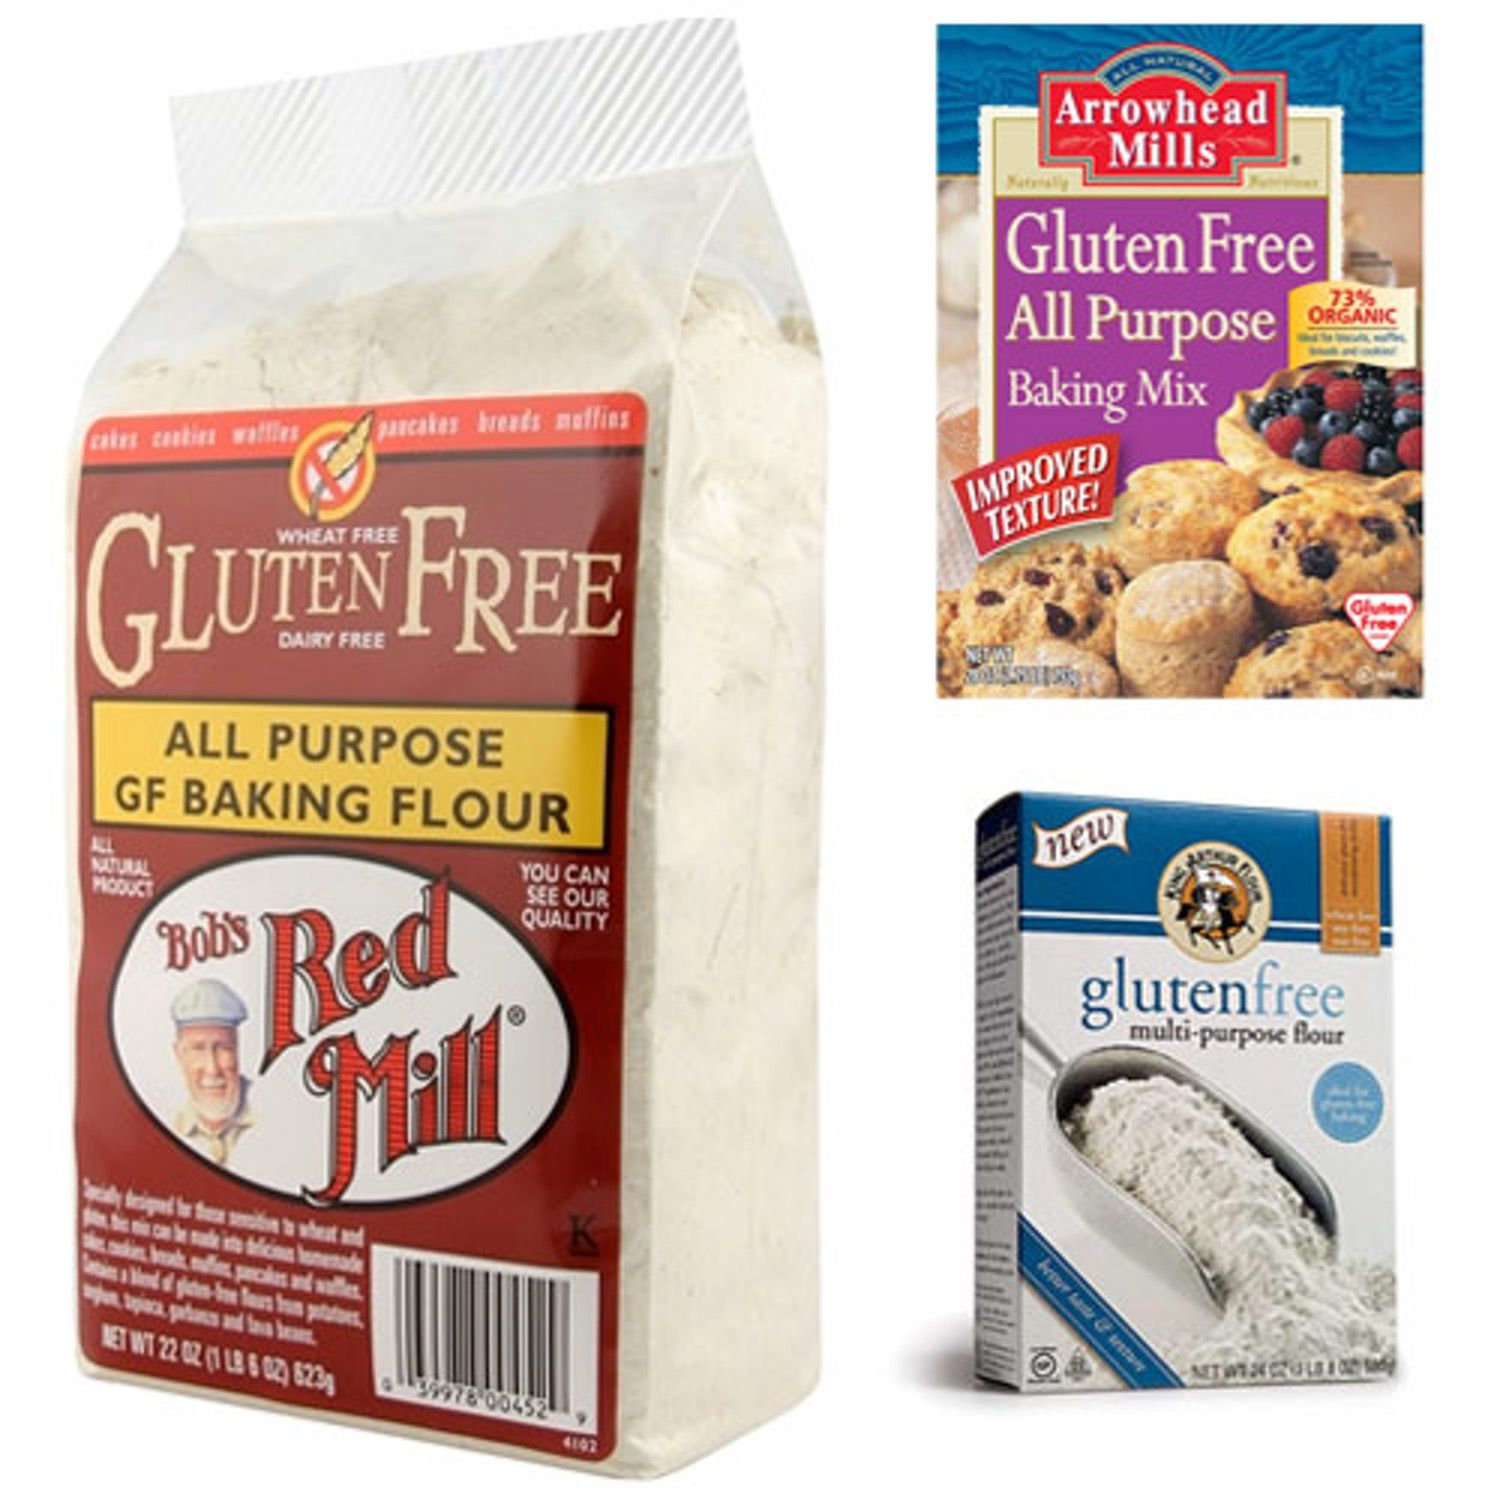 Gluten-Free Flour Substitutes: Which One Is Your Favorite?